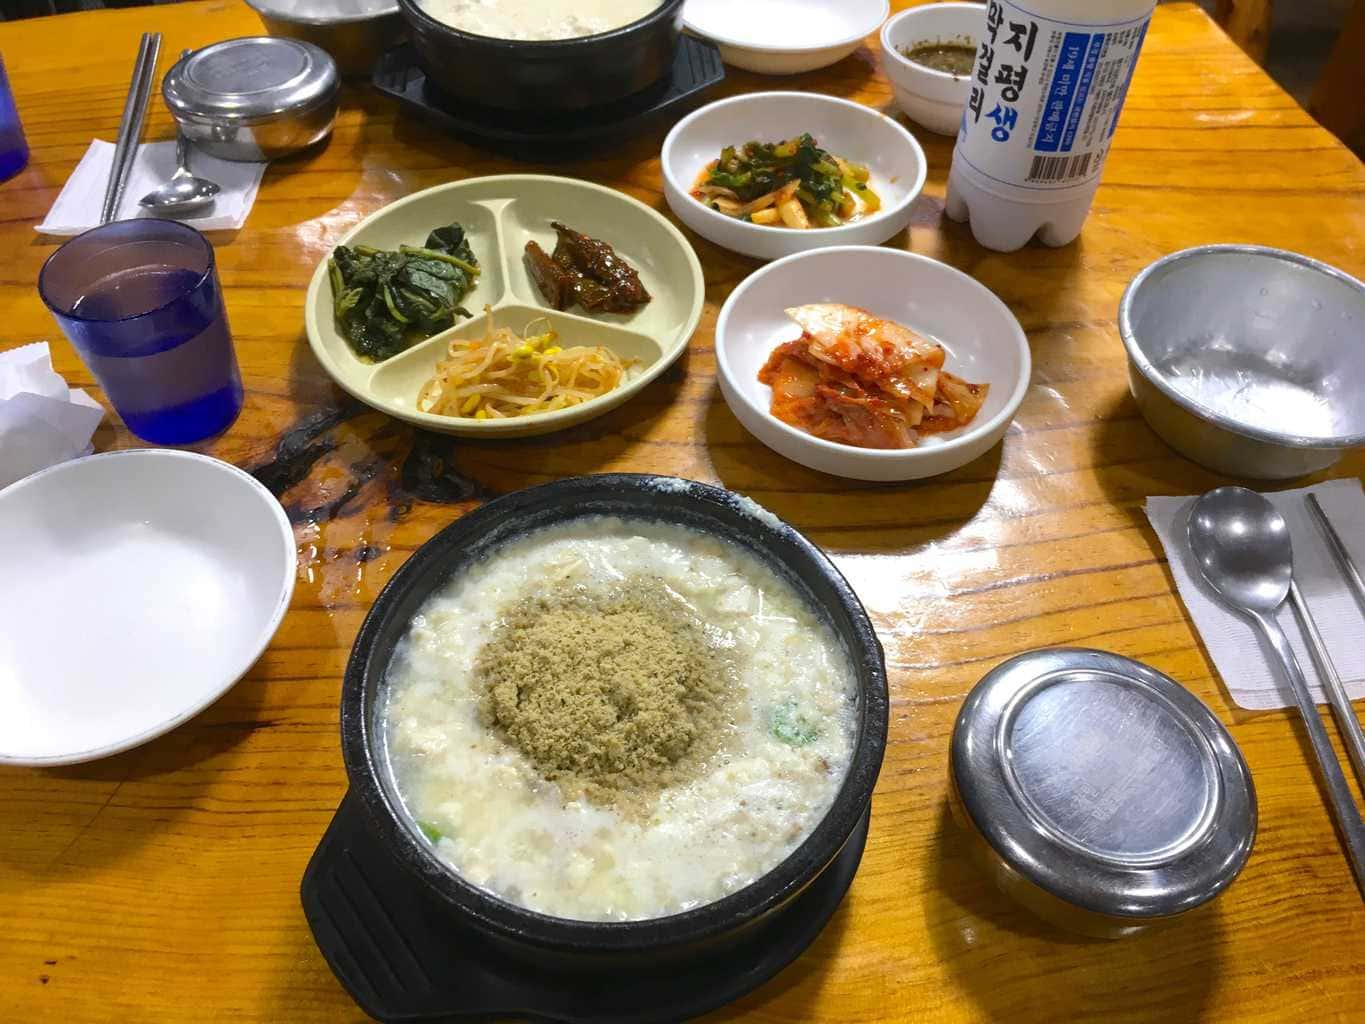 Traditional Korean food Perilla seed kalguksu